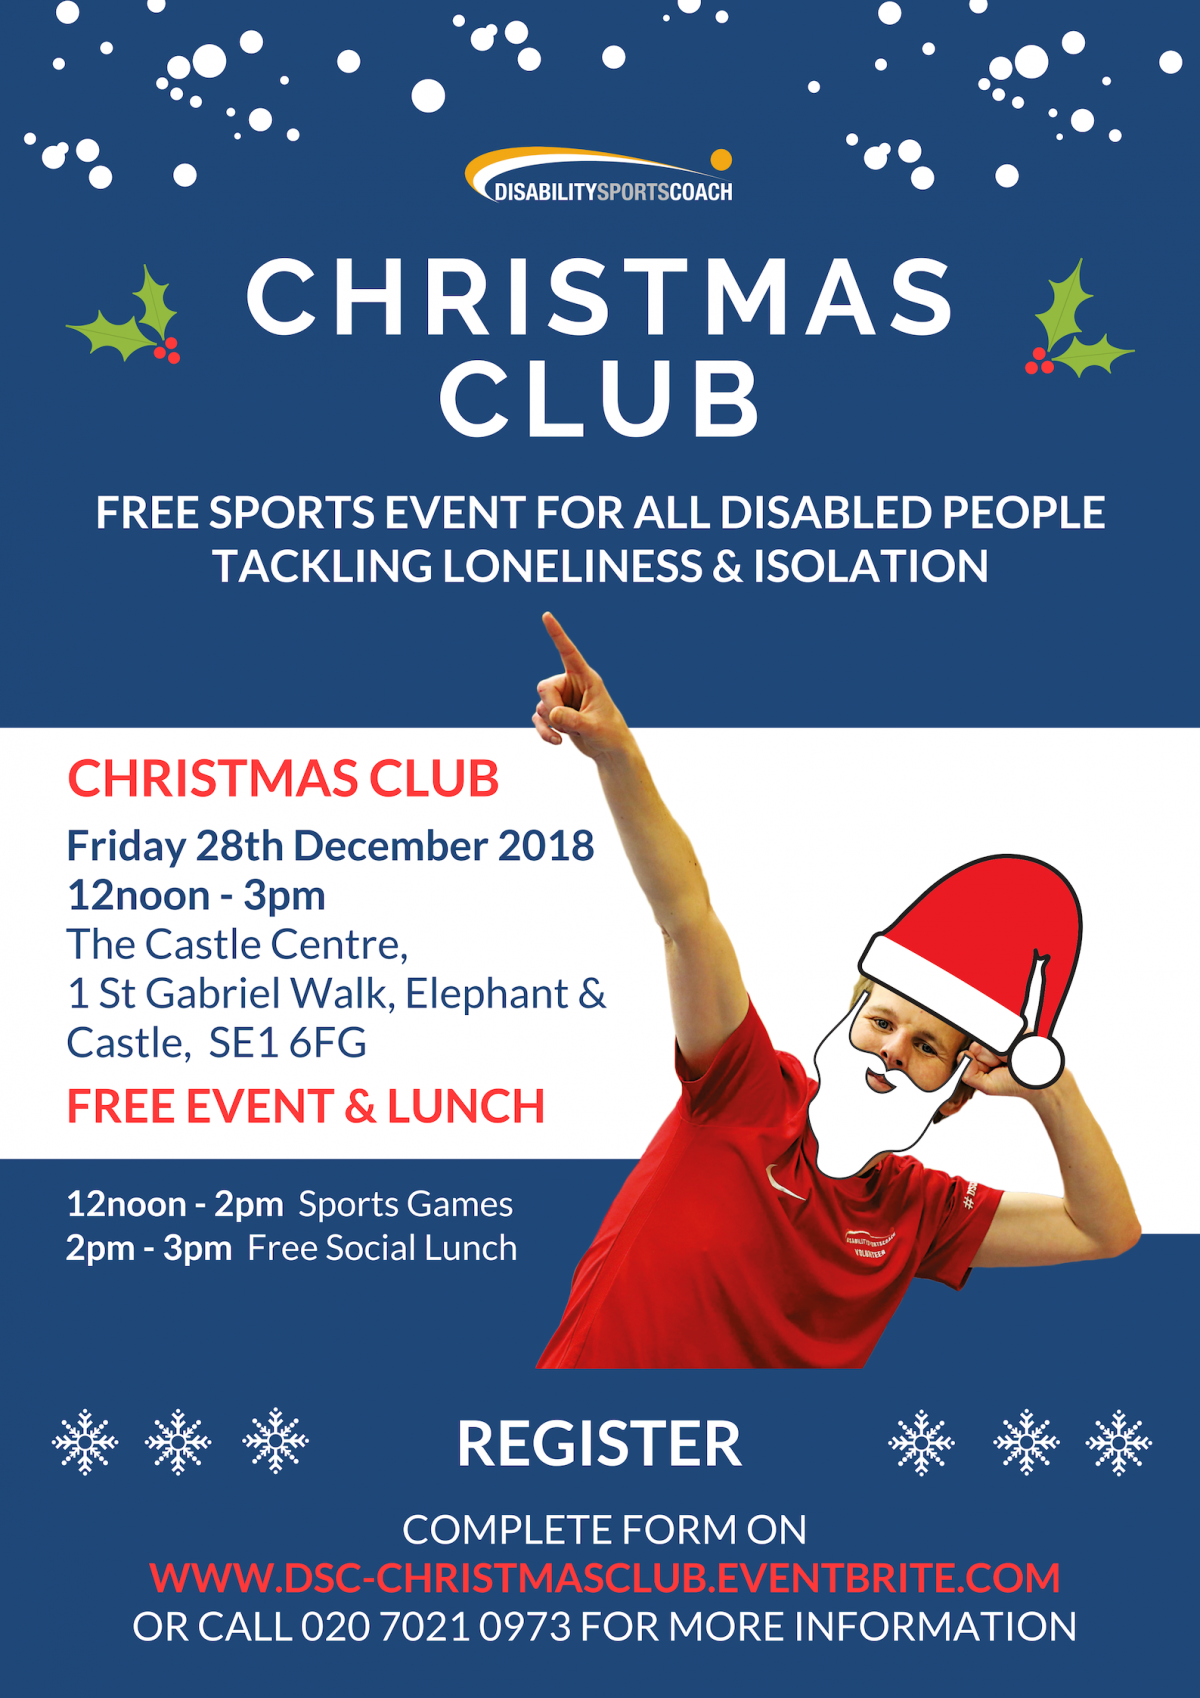 Christmas Club - free sports and lunch event for all disabled people - unity - community clubs tackling isolation and loneliness